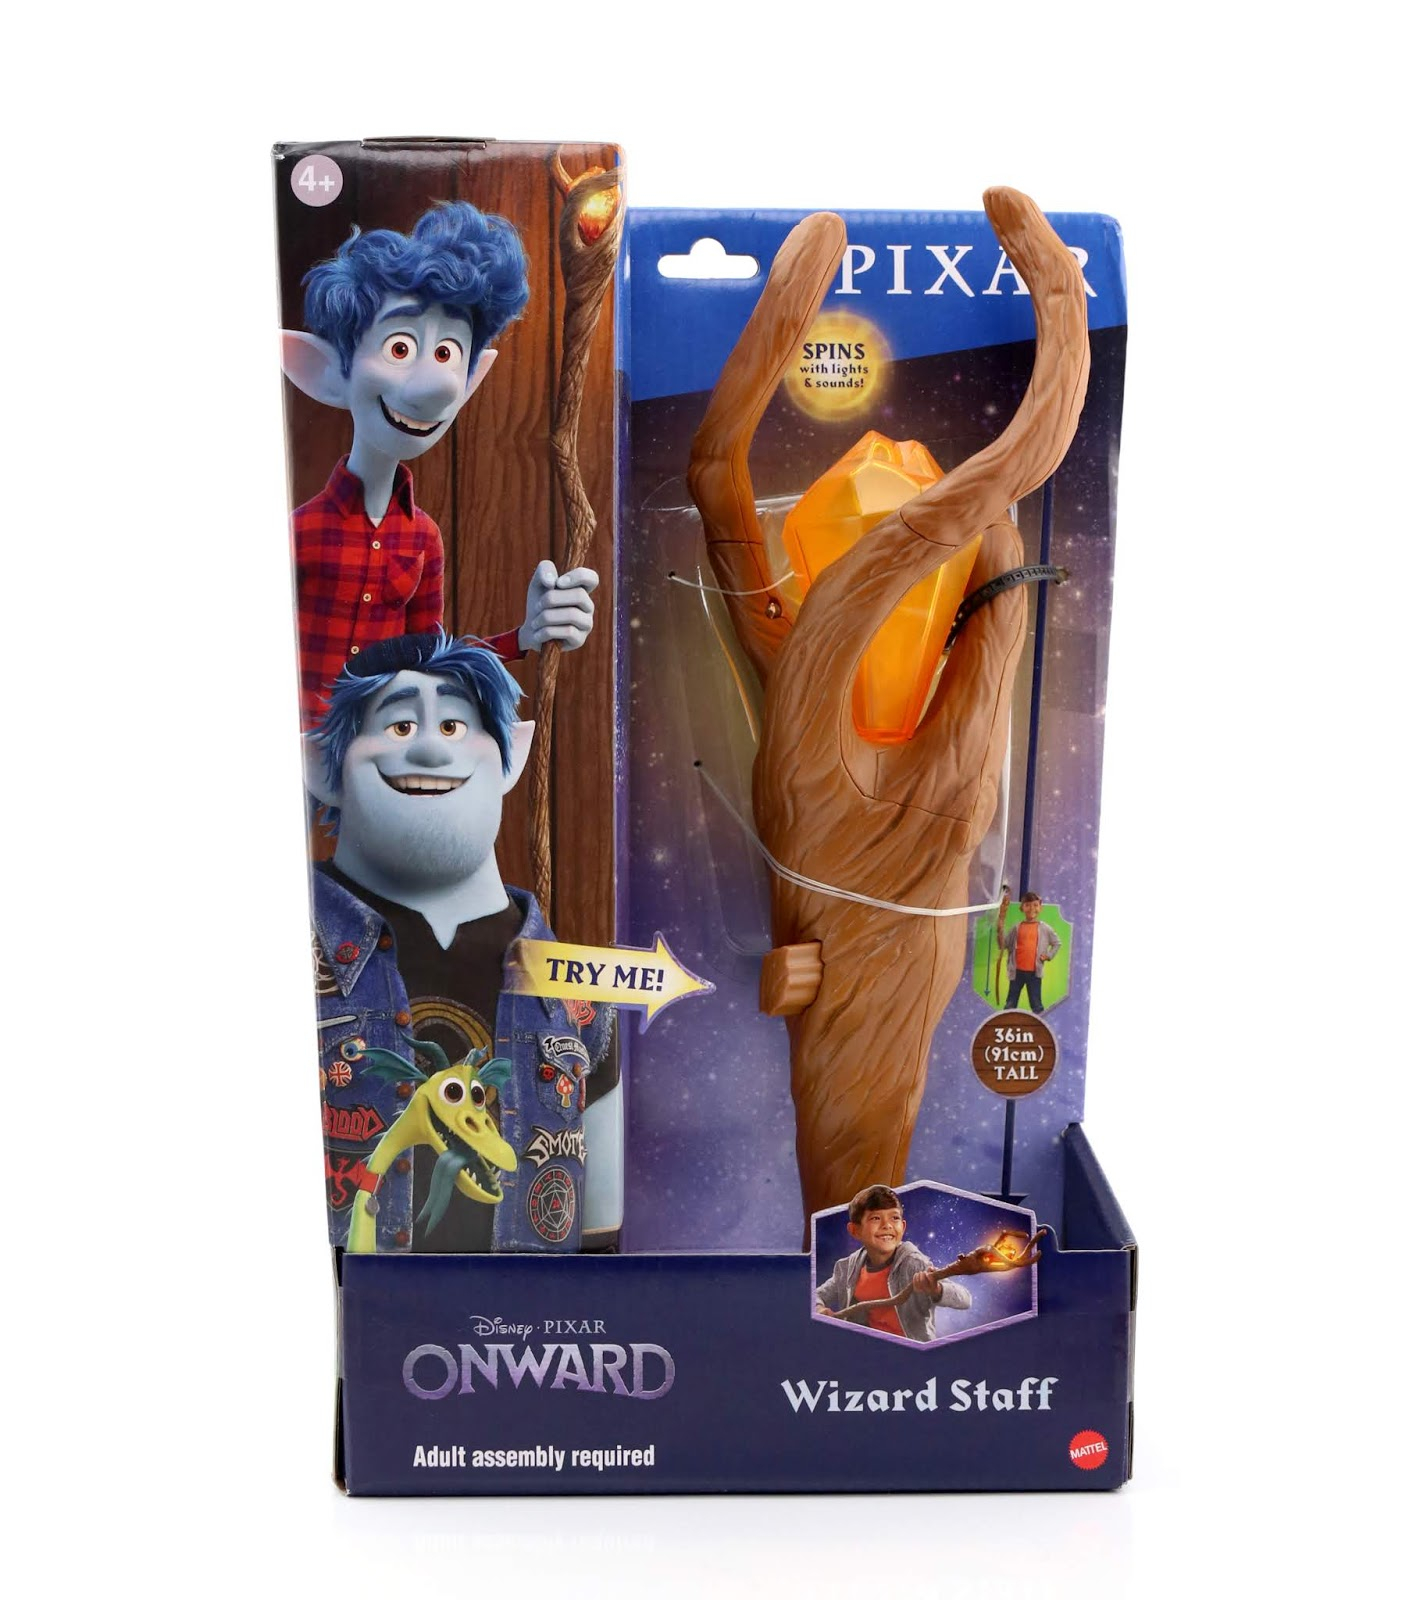 Pixar Onward Wizard Staff Toy by Mattel Review